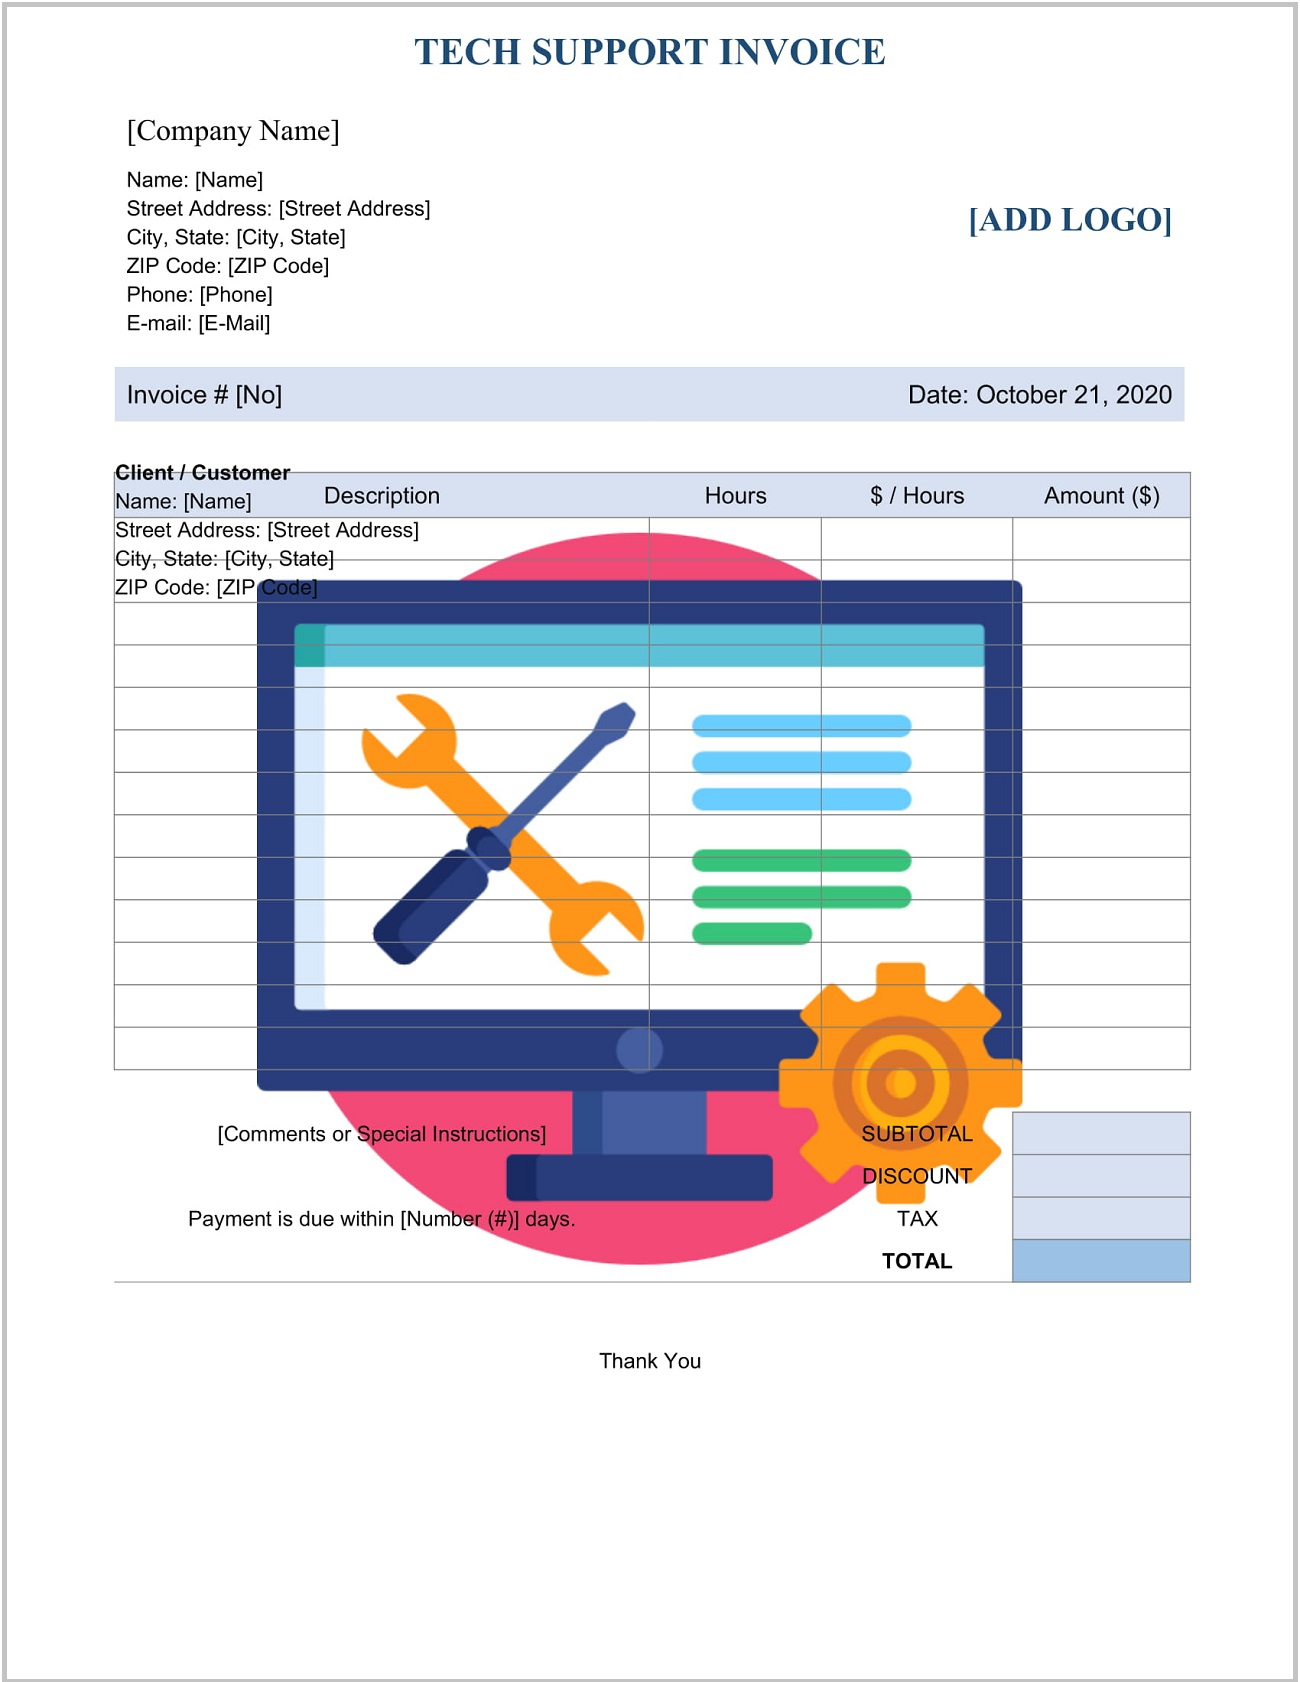 Tech Support Invoice Template Word Doc Format